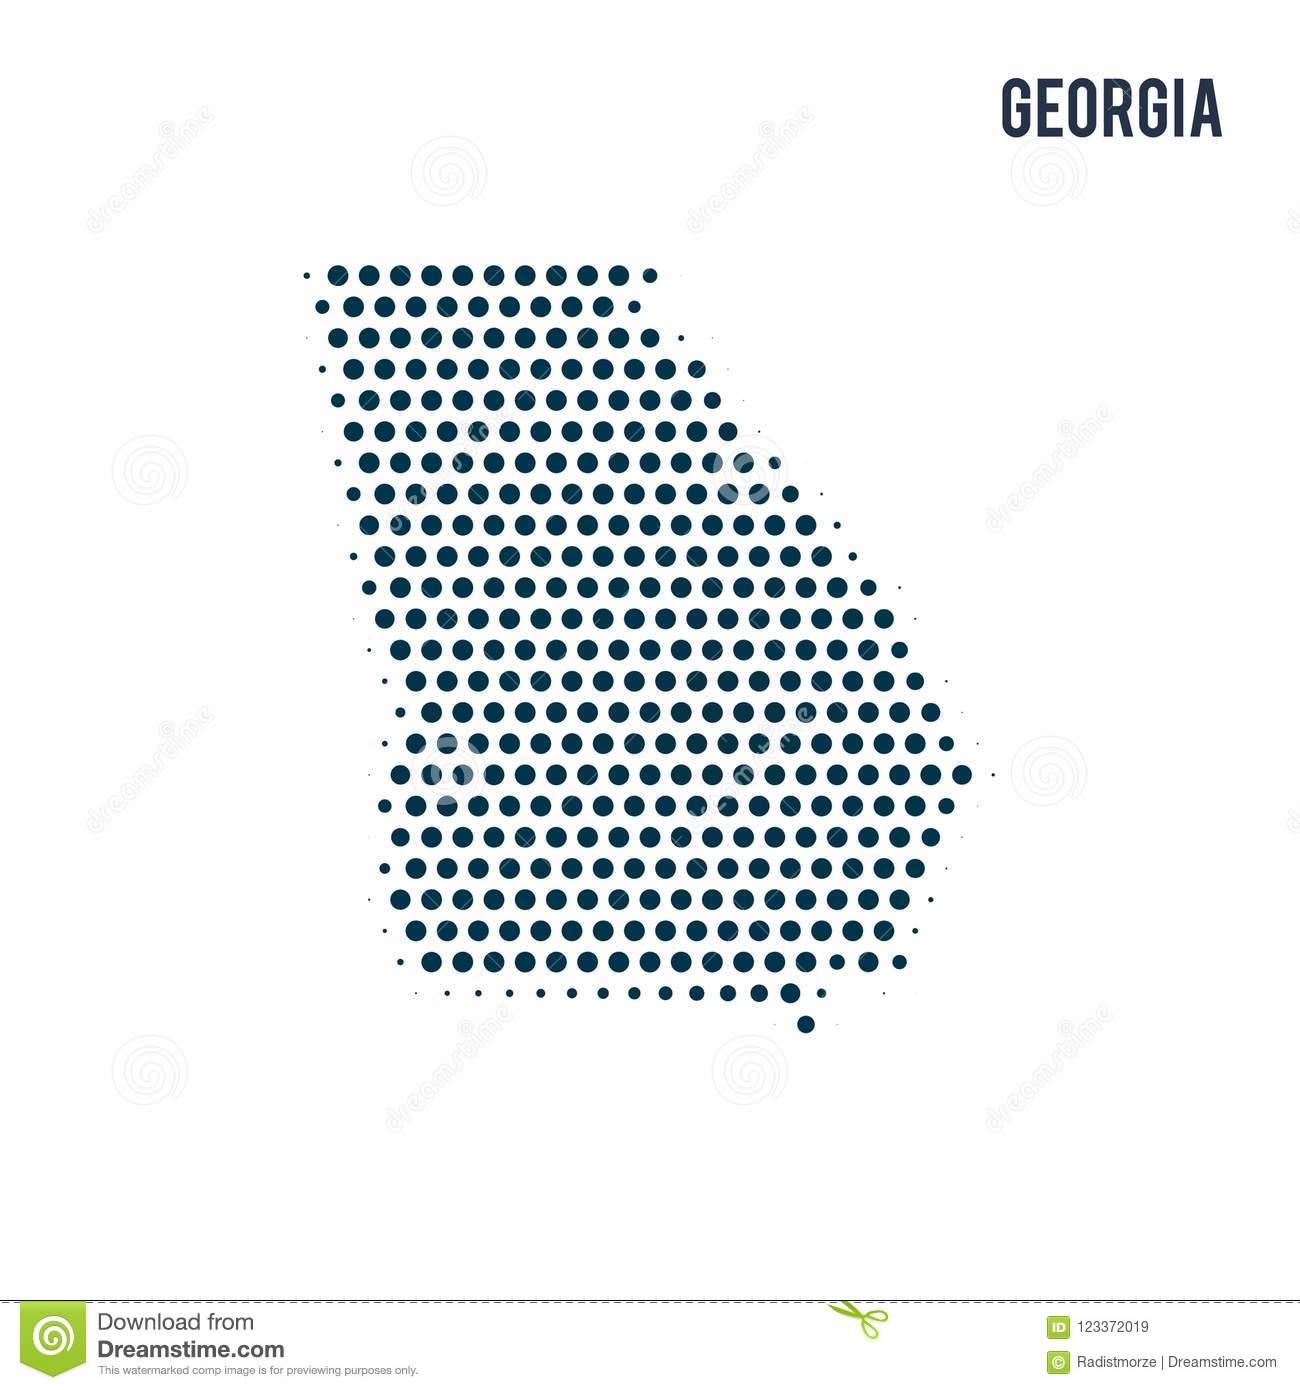 Map Of The State Of Georgia.Dotted Georgia Map Isolated On White Background Stock Illustration